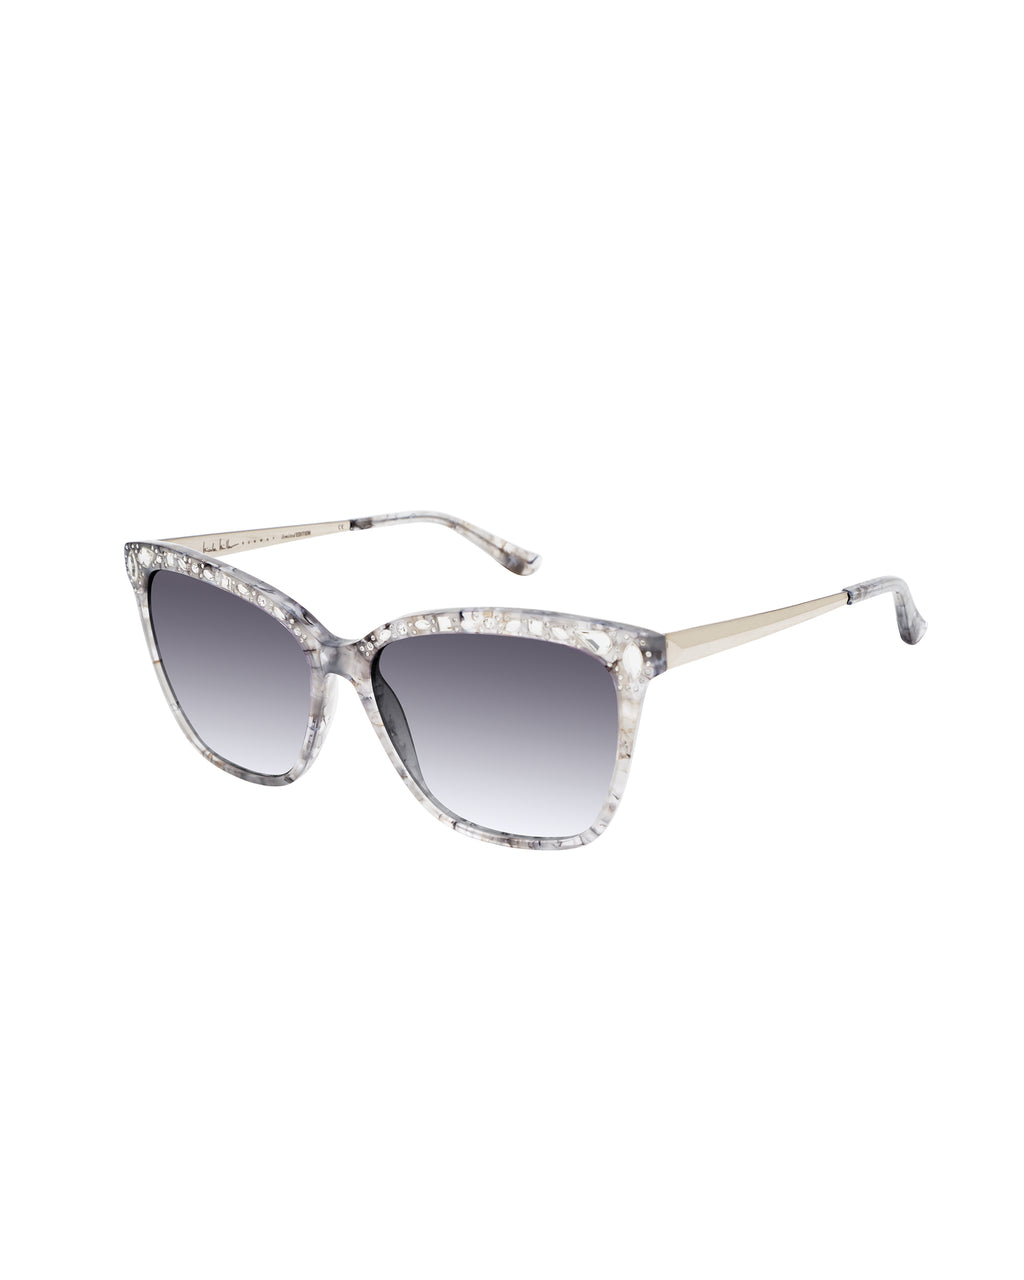 NMNAN03 - Nanterre Sunglasses - accessories - sunglasses - 100% UVA/UVB